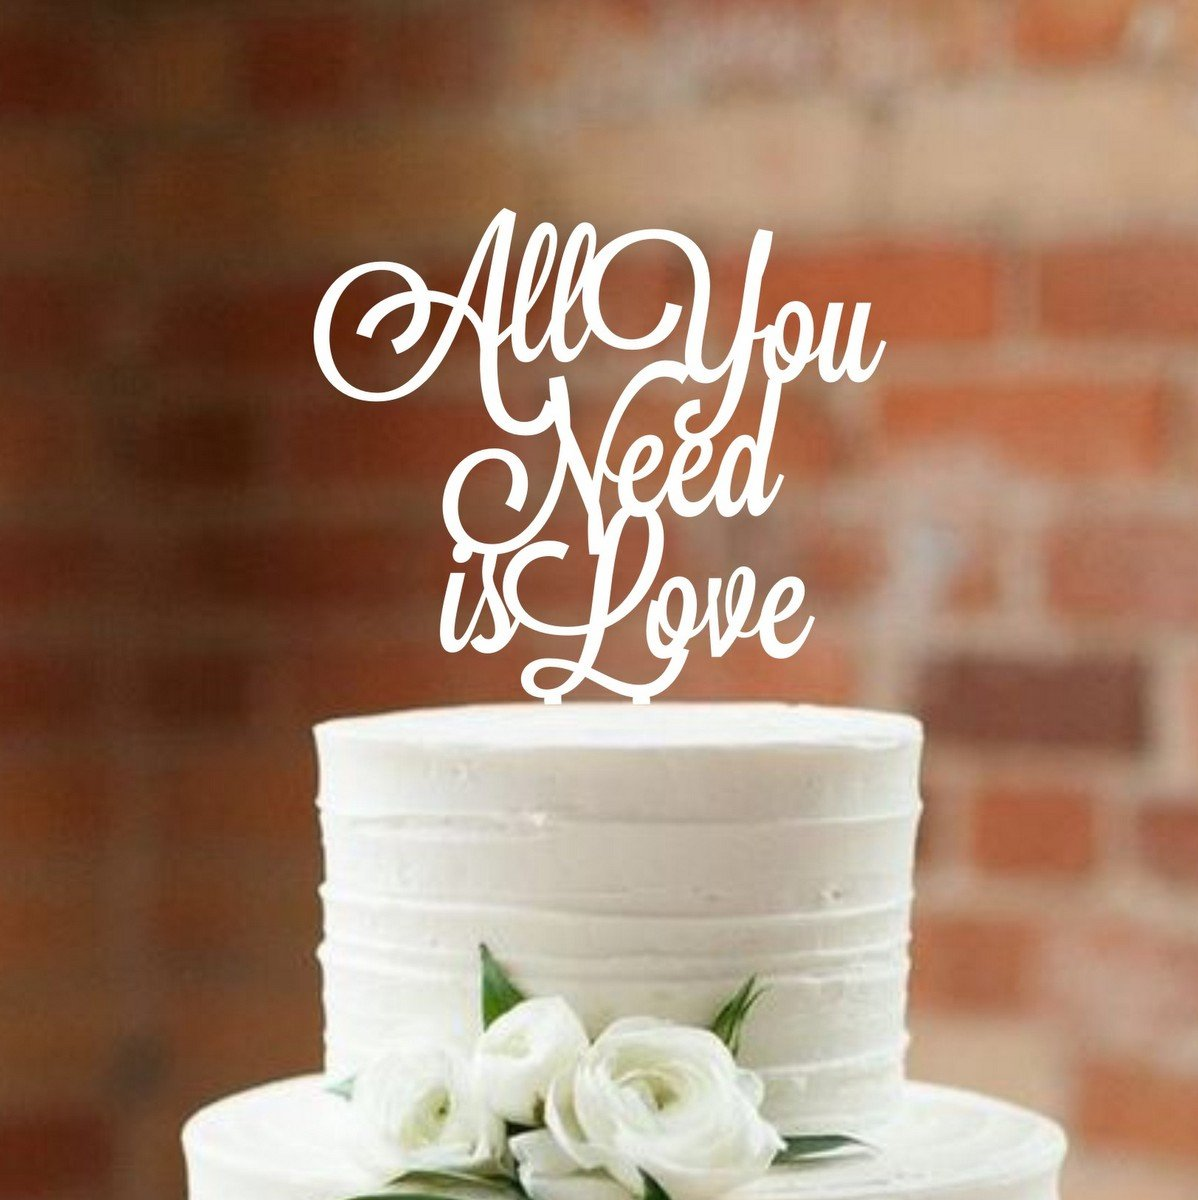 Wedding Cake Topper All you need is love Cake topper for wedding decorations HappyPlywood (white) by HappyPlywood (Image #3)